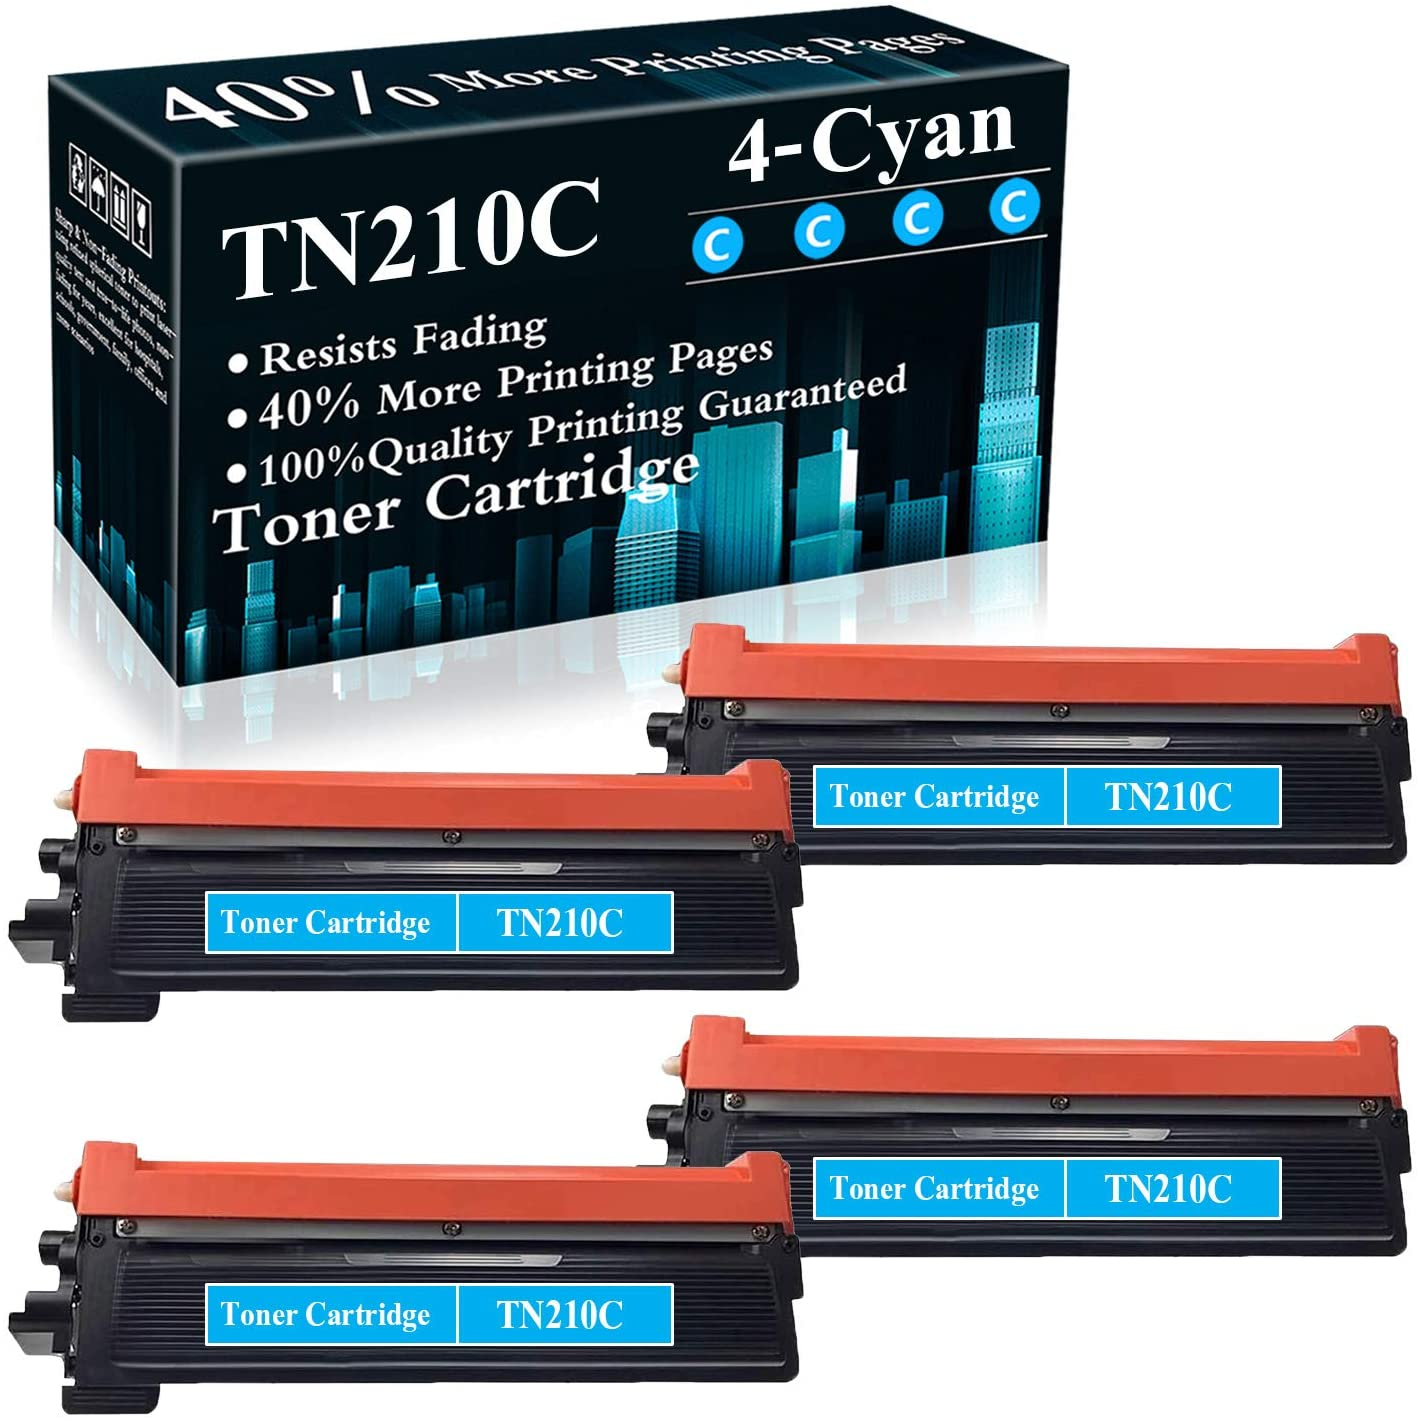 4 Cyan TN210 TN210C Compatible Toner Cartridge Replacement for Brother HL-3040CN 3045CN 3070CW 3075CW 8070 MFC-9010CN 9120CN 9125CN 9320CN/CW 9325CW DCP-9010CN Printer,Sold by TopInk